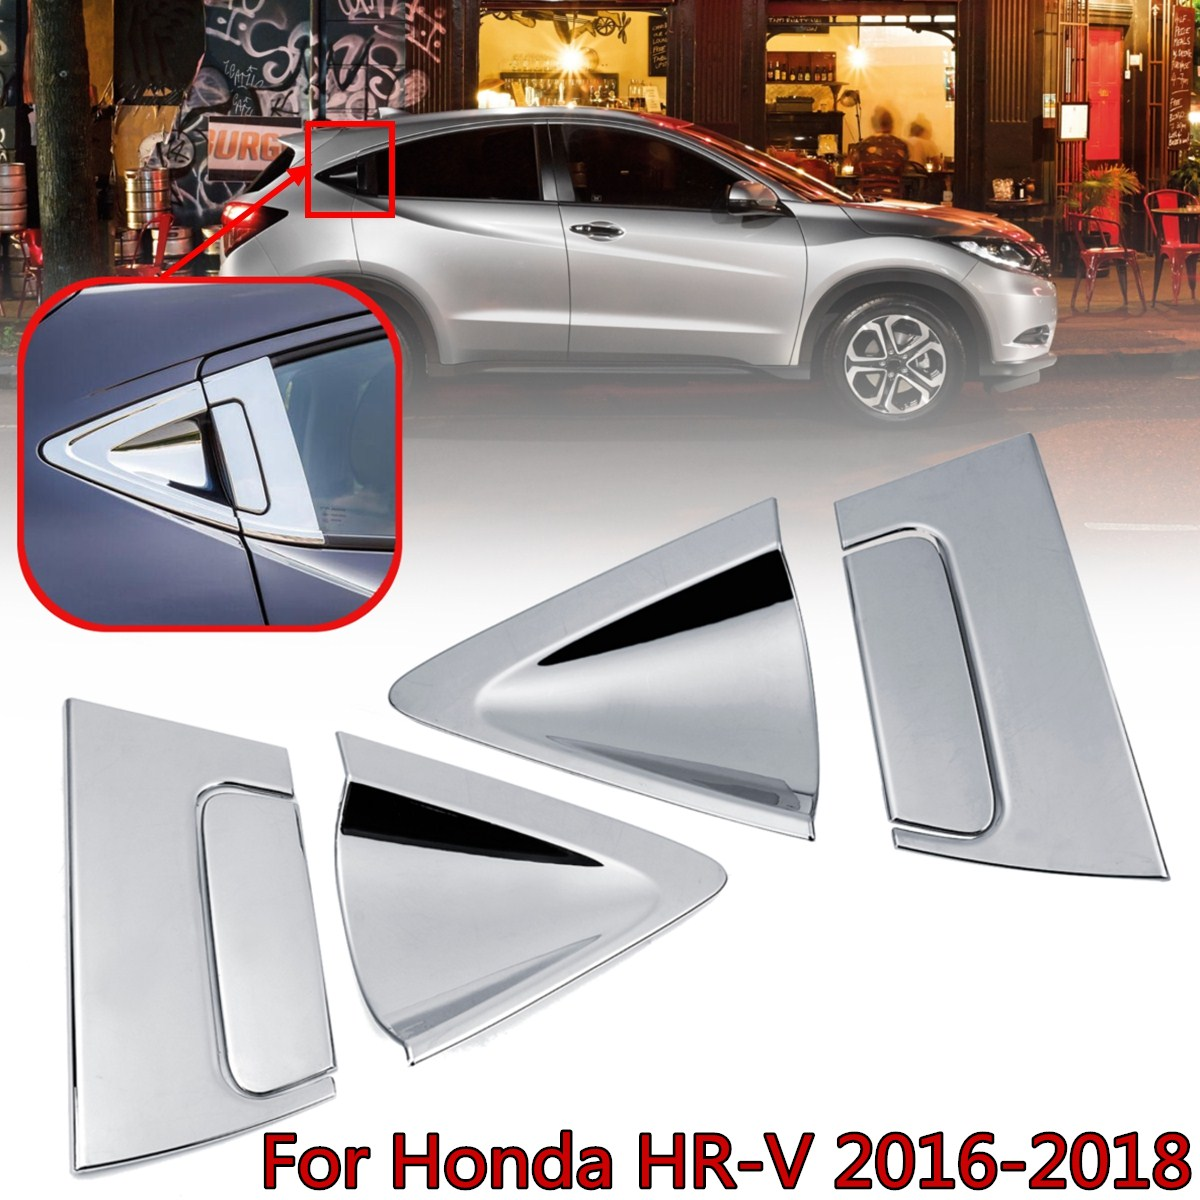 6pcs ABS Chrome/Carbon fiber Side Rear Door Handle Cover Bowl Cover Insert Trim For <font><b>Honda</b></font> for HR-V <font><b>HRV</b></font> 2016-2018 Car <font><b>Accessories</b></font> image